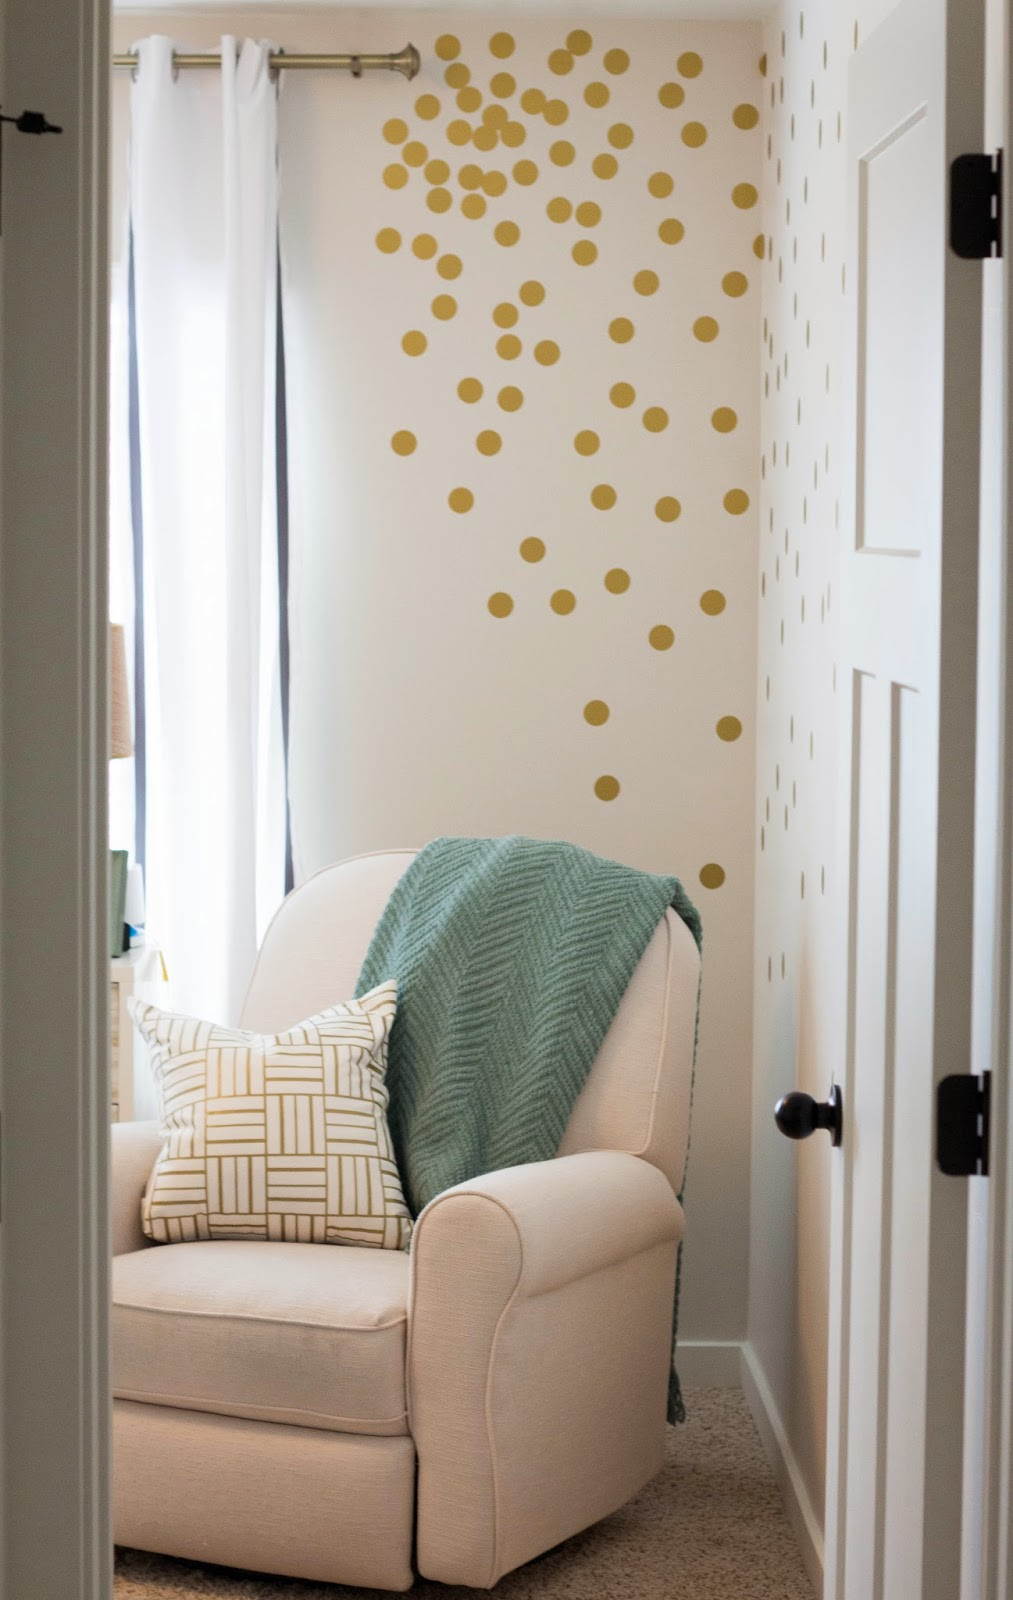 Diy gold polka dot wall the golden sycamore best 25 polka dot fun and easy ways to use polka dot wall decals how to put up polka amipublicfo Gallery